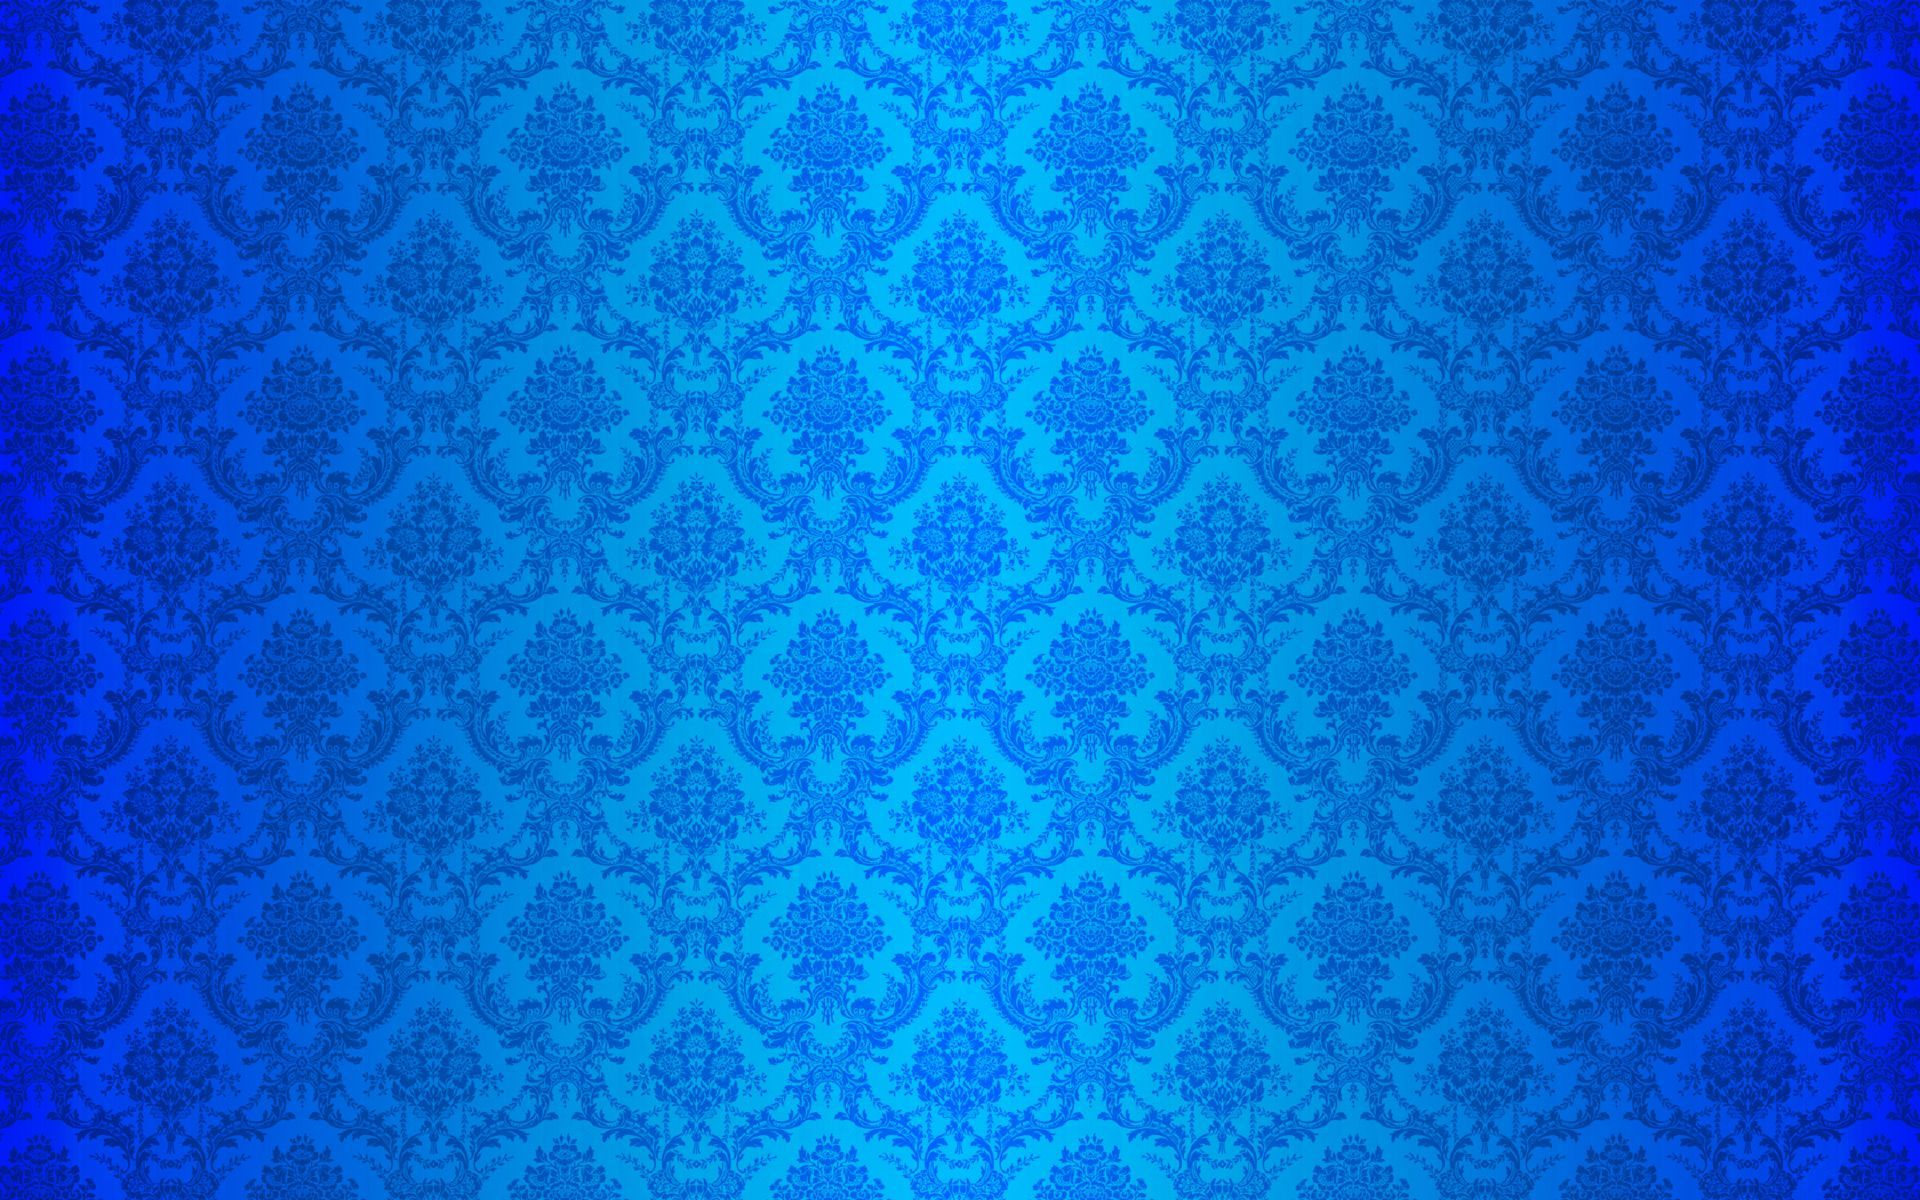 Blue Carbon Fiber Wallpaper Hd Pattern Backgrounds Carbon Fiber Wallpaper Blue Wallpapers Royal Blue Wallpaper